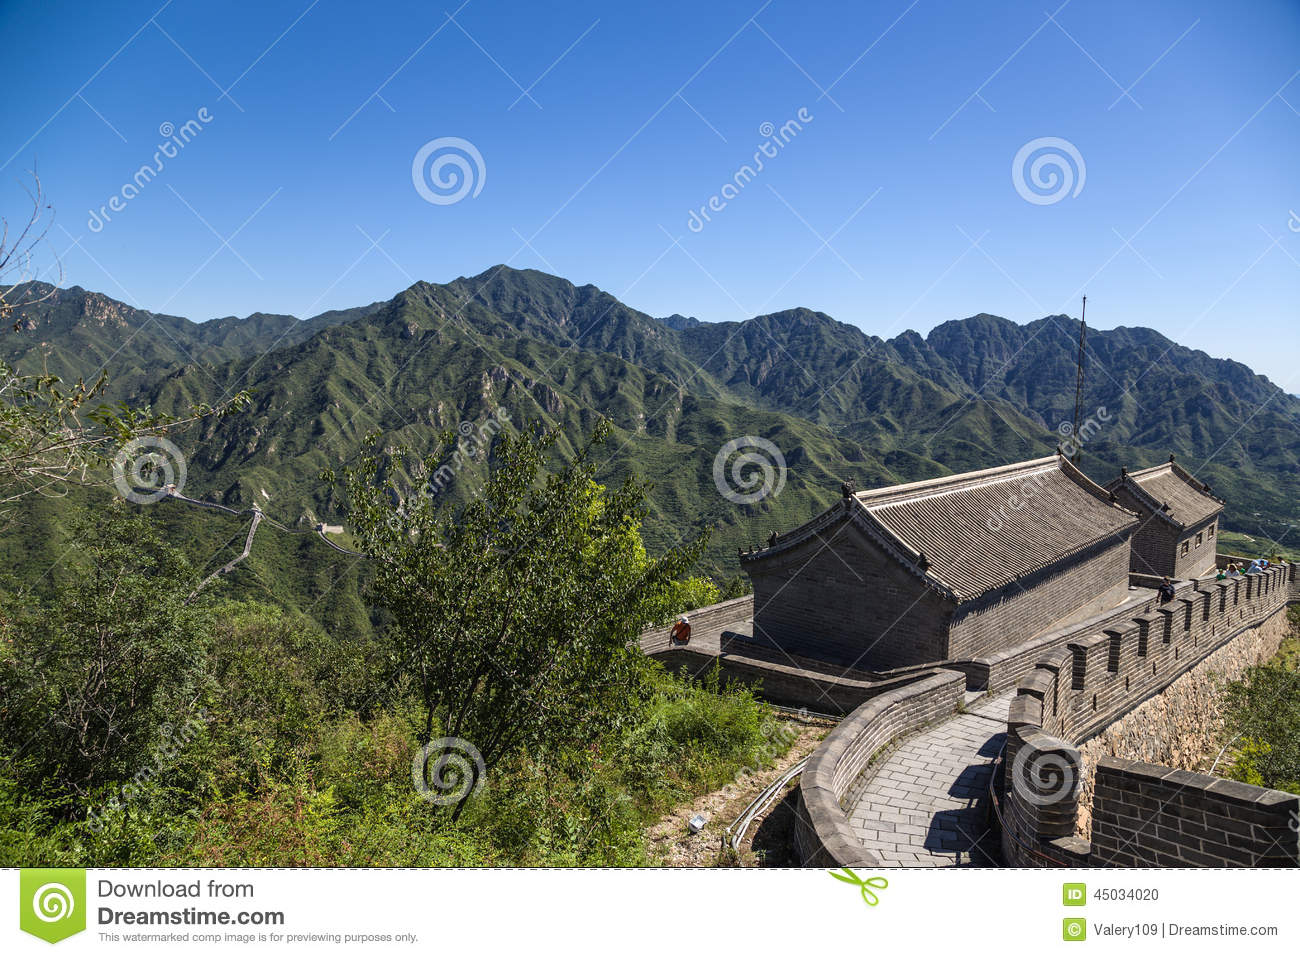 an analysis of the construction of the great wall of china Doing the research to write a blog about how they built the great wall of china reallt surprised me great wall of  which revolutionizes the construction industry.